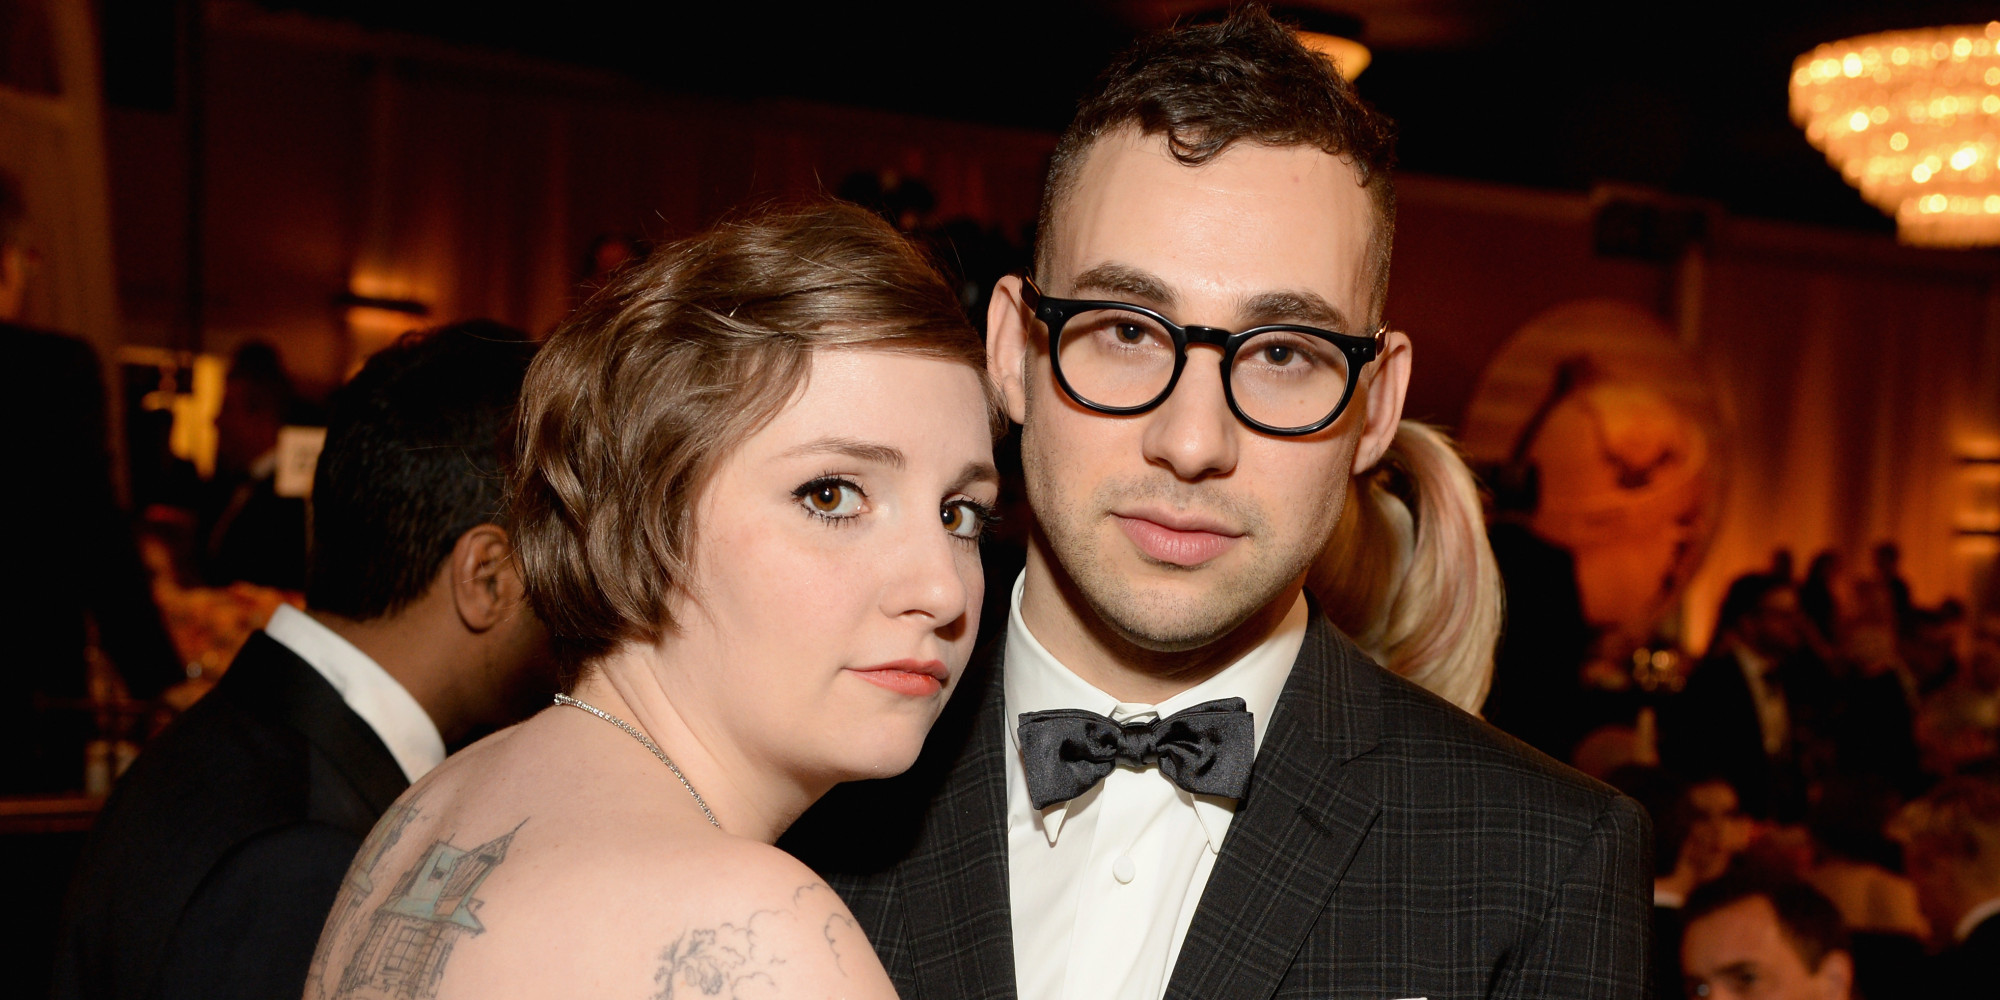 lena single parents Researchers found that the us had 258 percent of children being raised by a single parent,  lena dunham bares her breast on social media as she recovers from .